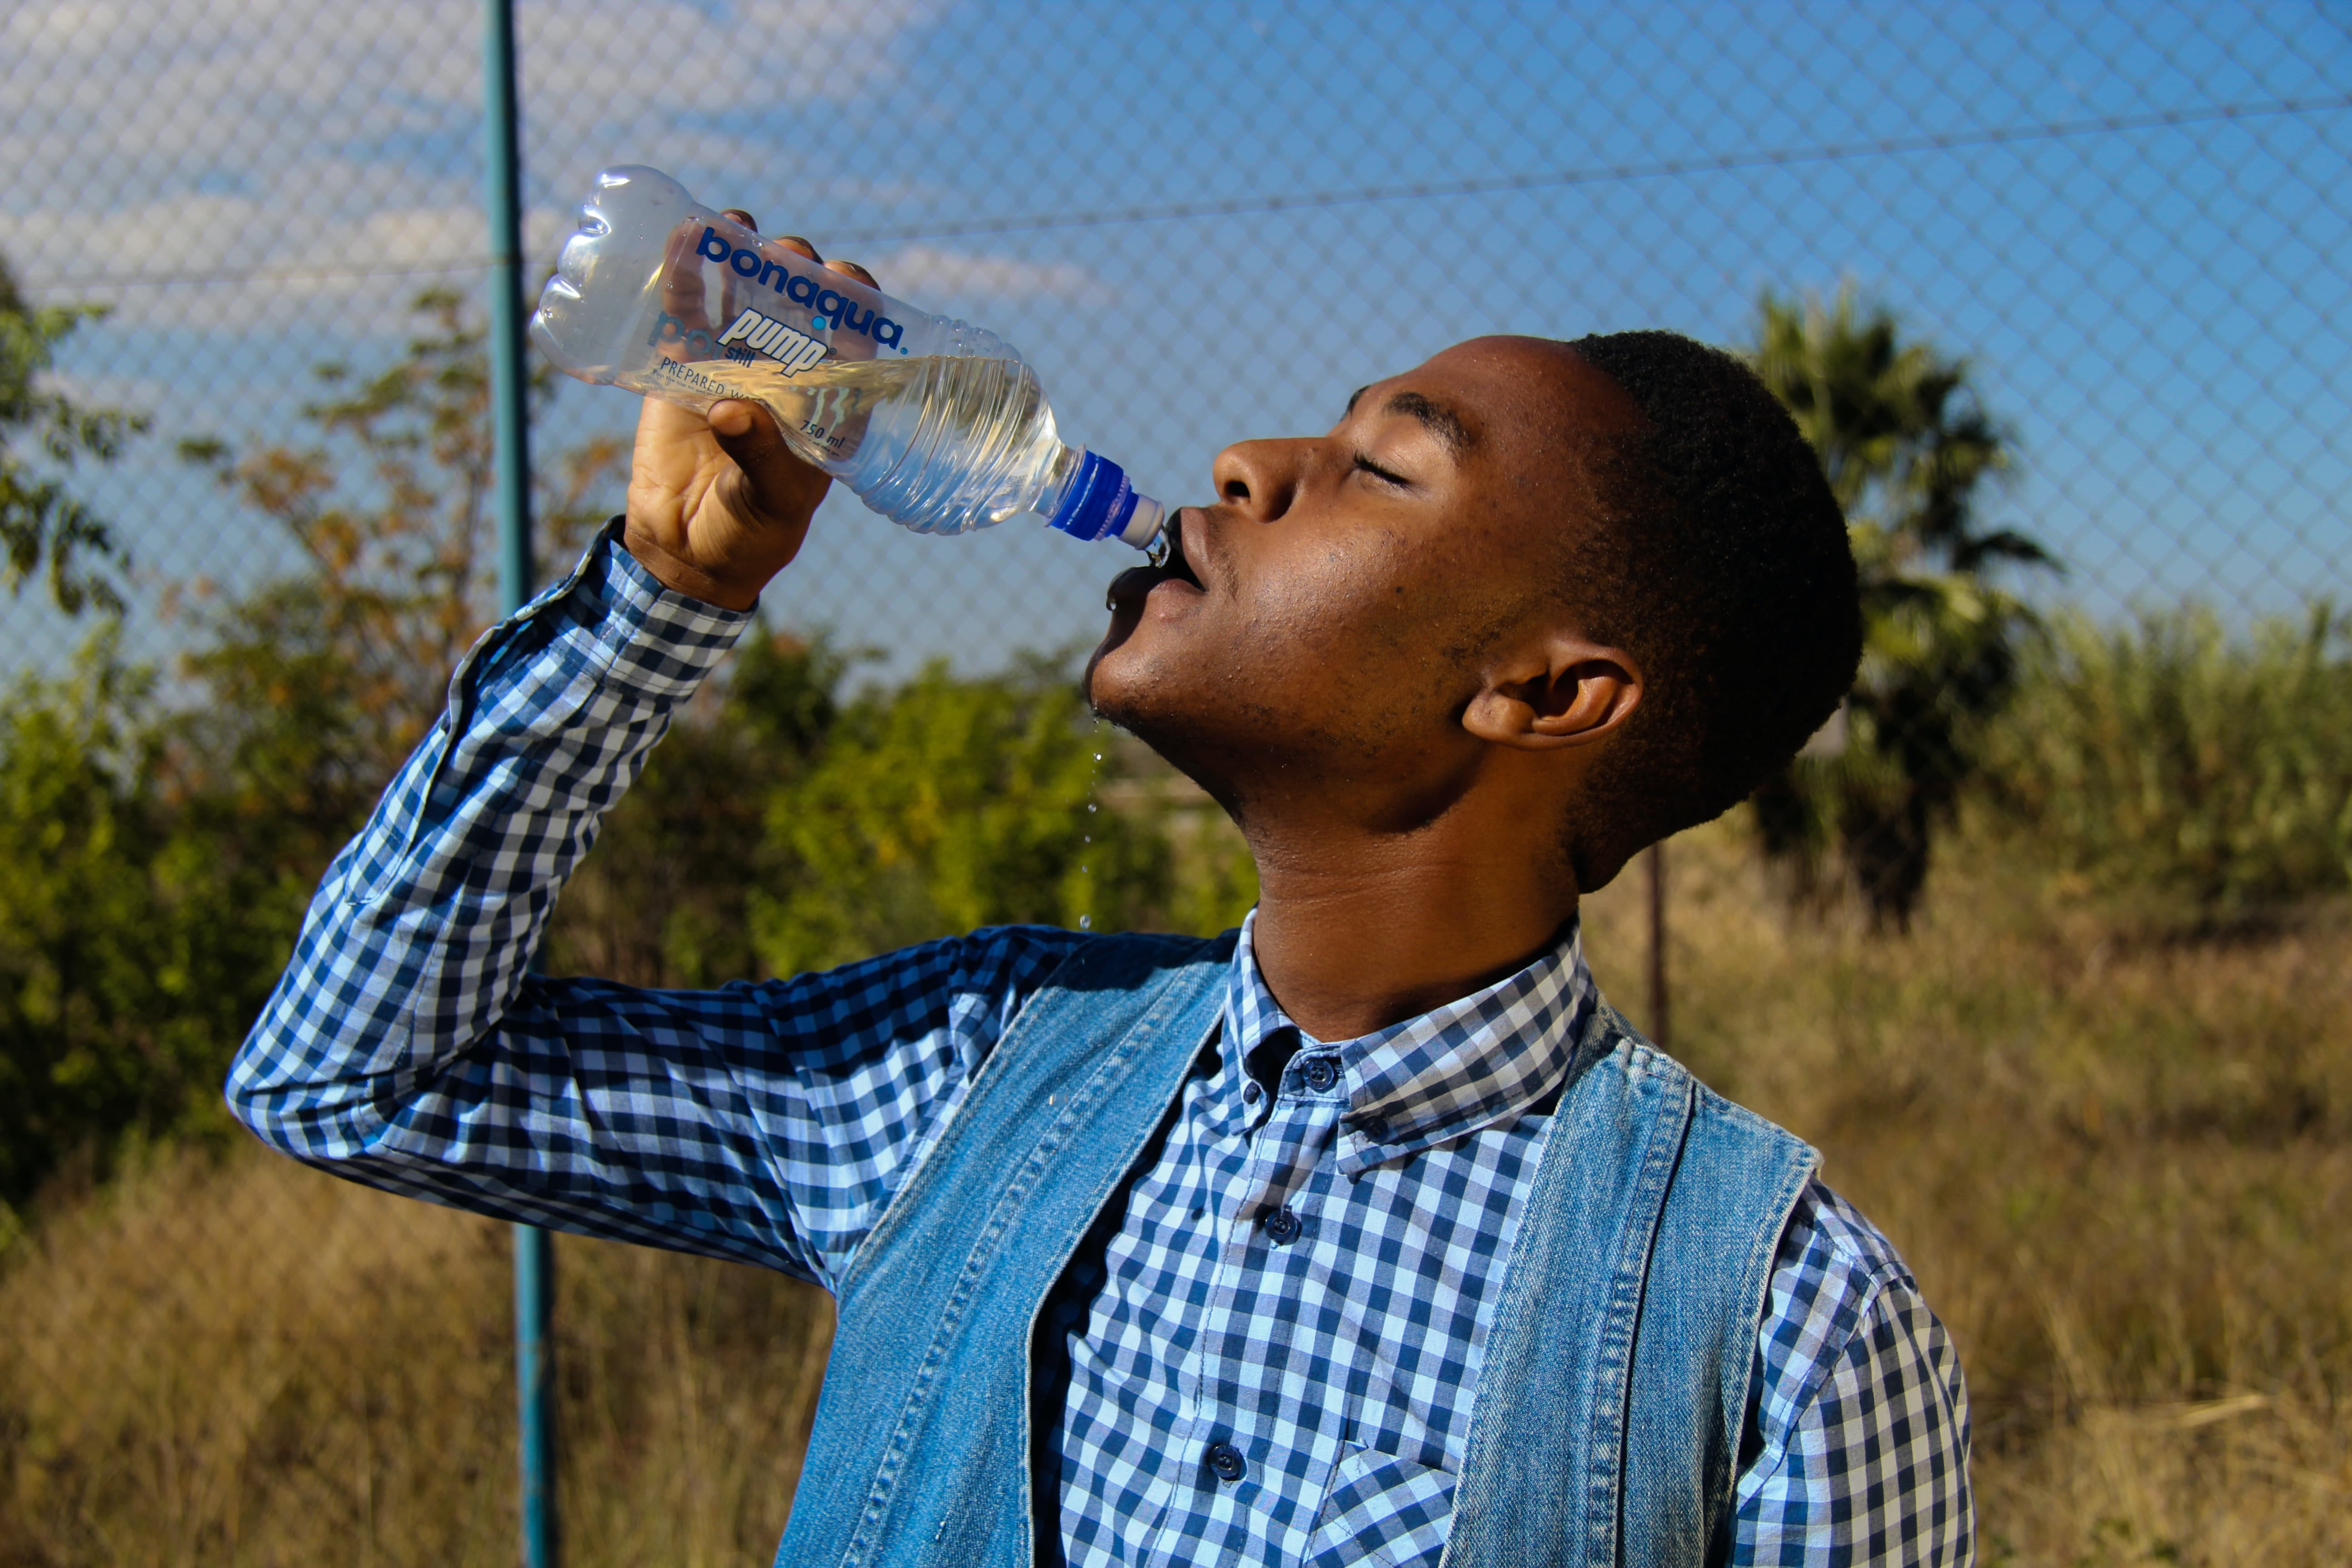 photography-of-a-man-drinking-water-1126557